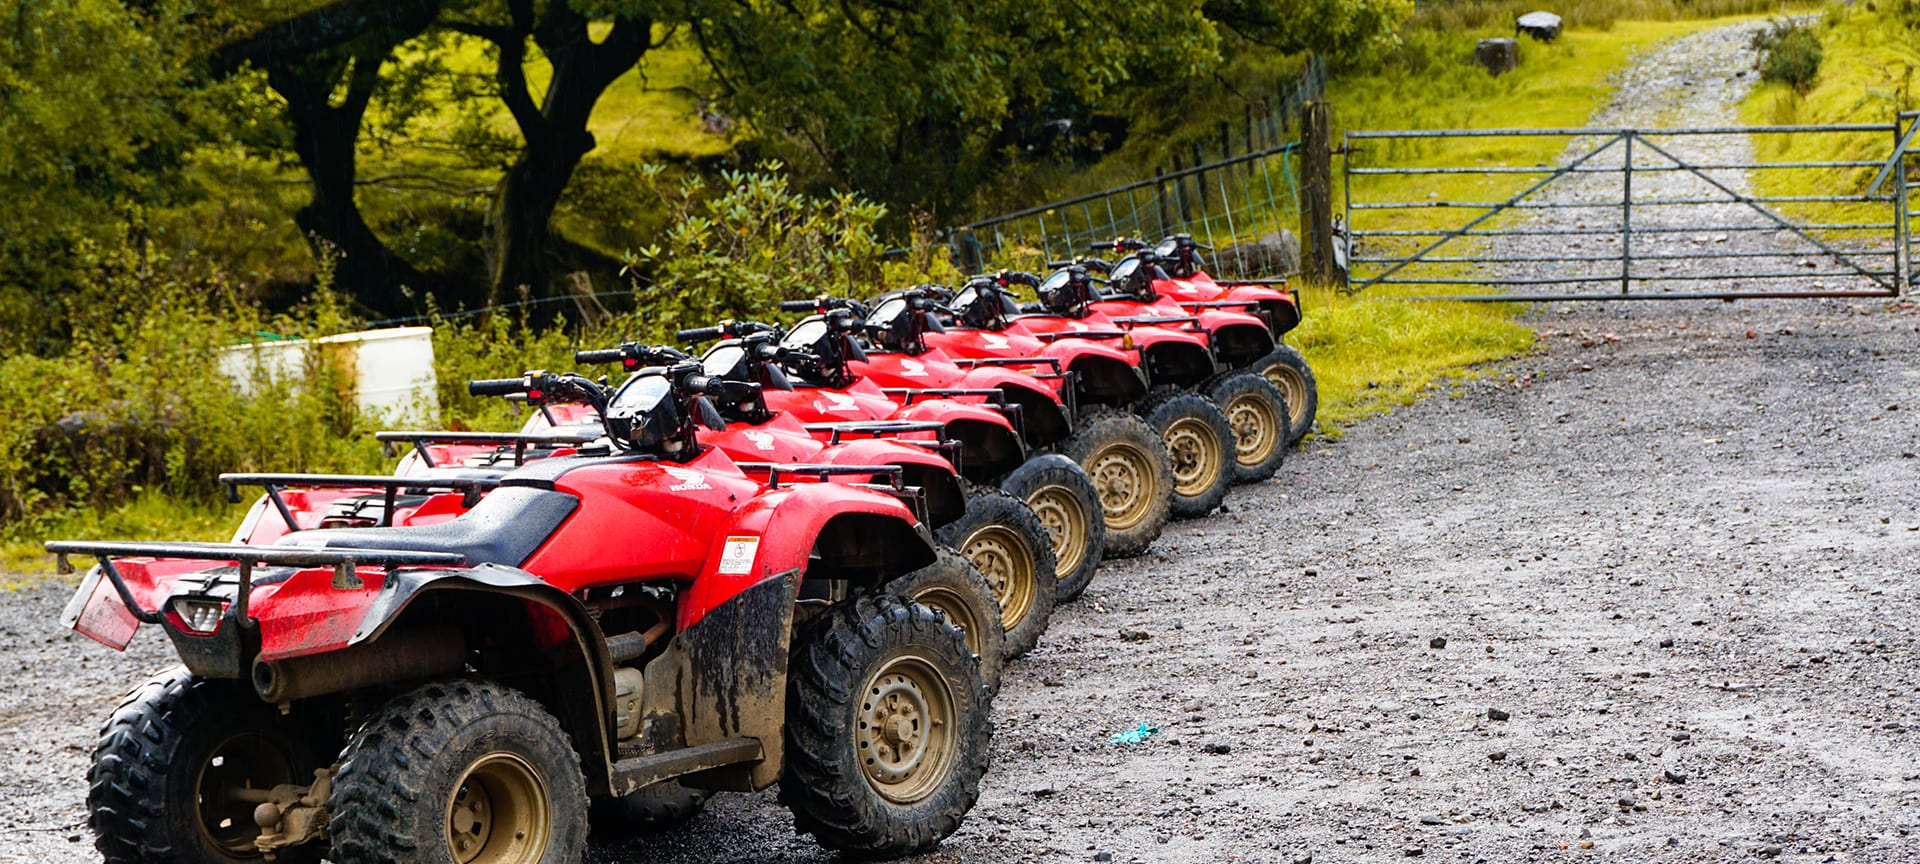 Take your breath away with the adventure and thrill of navigating quad bikes through 175 acres of hills and woodlands!